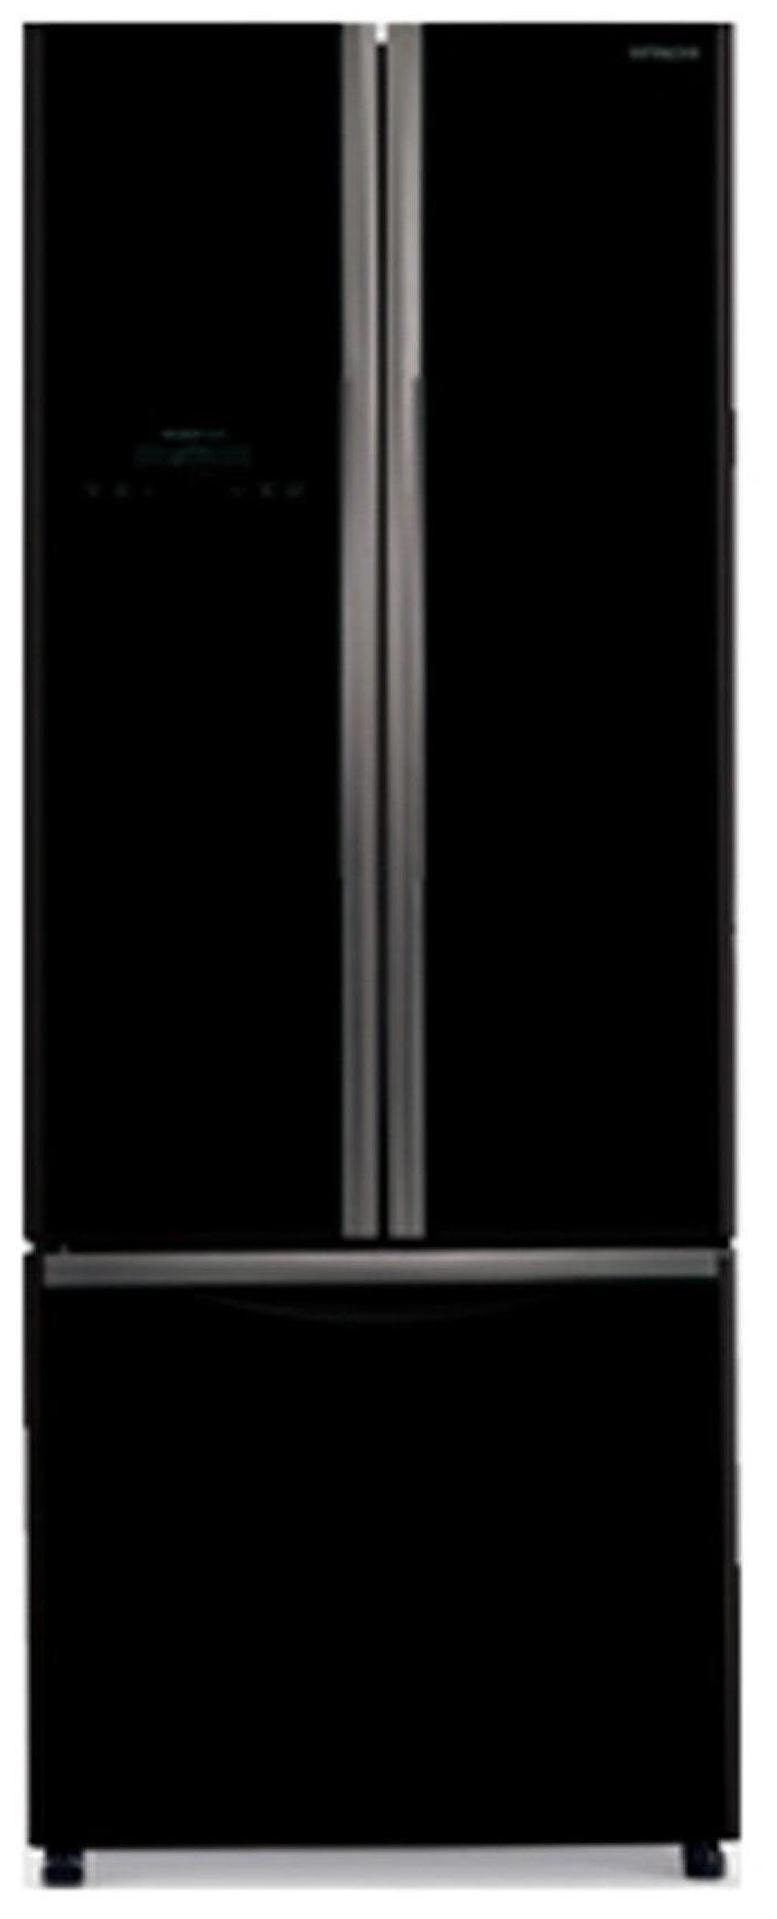 Hitachi 456 L Frost Free Triple Door 5 Star Refrigerator (RWB480PND2, Glass Black)